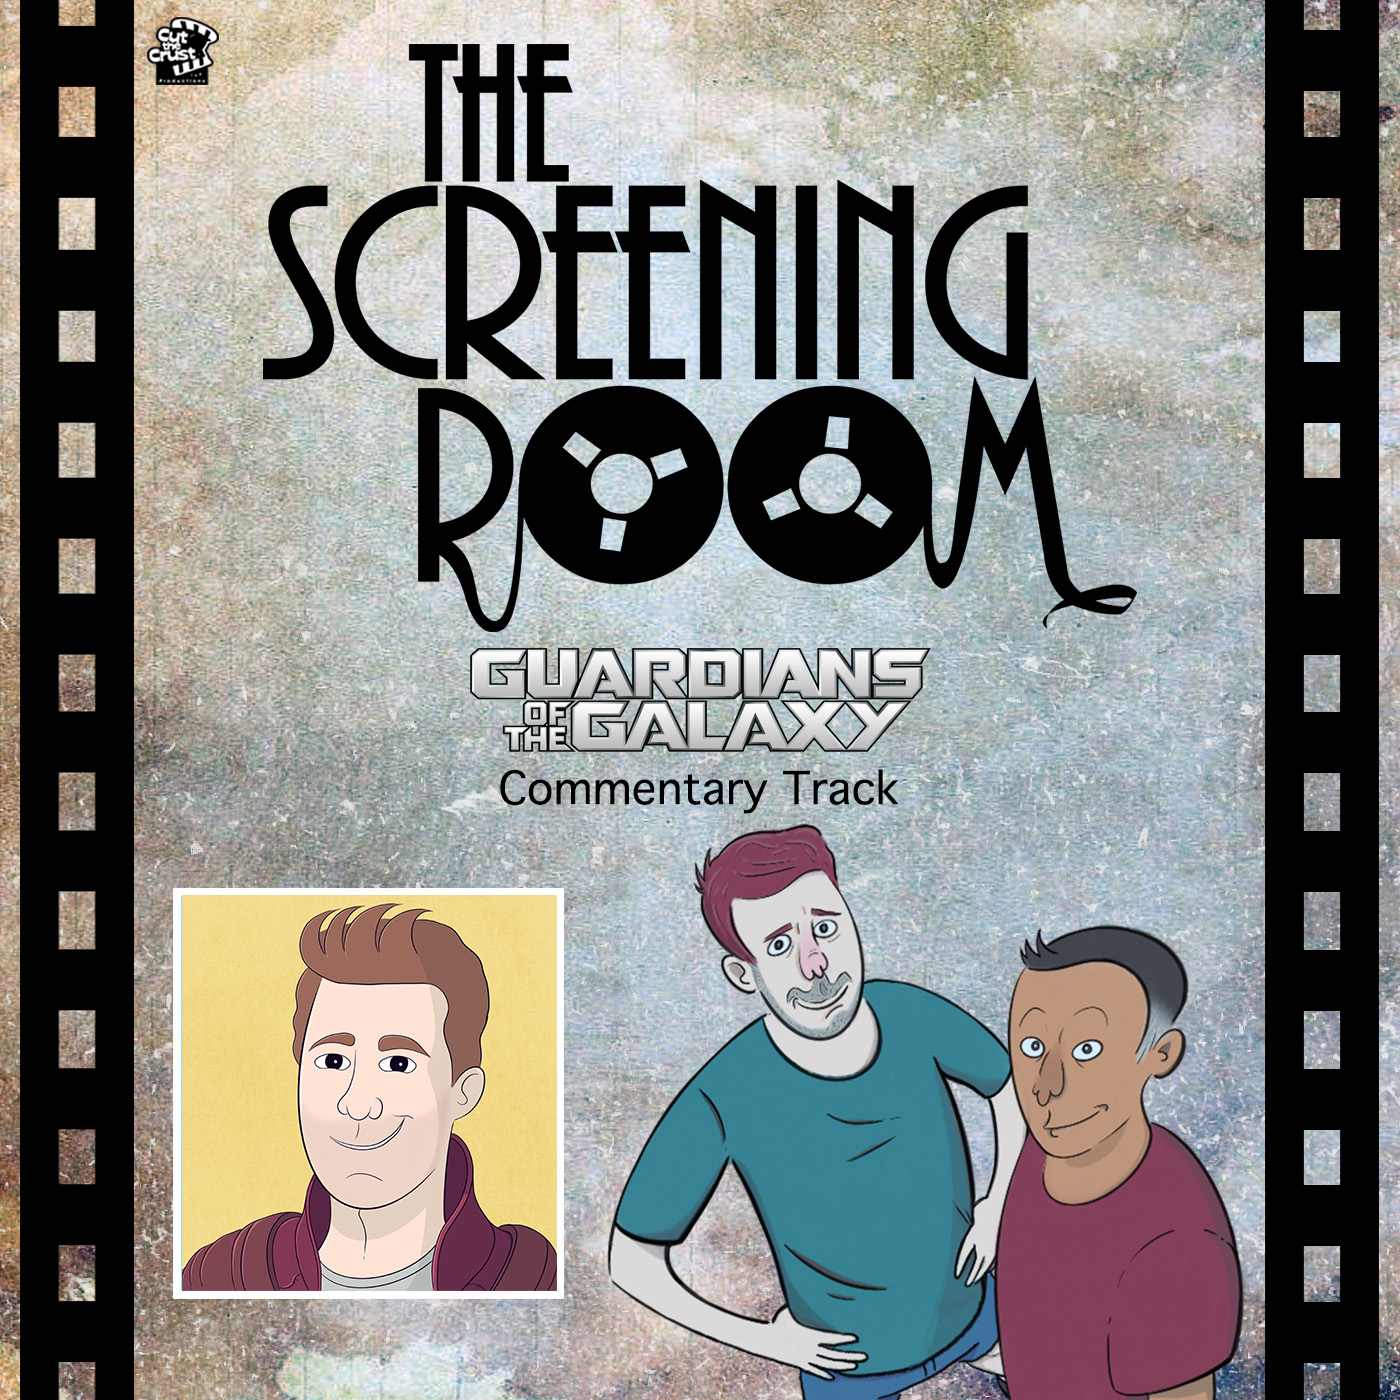 The Screening Room - S1E11 - Guardians of the Galaxy - Norton James